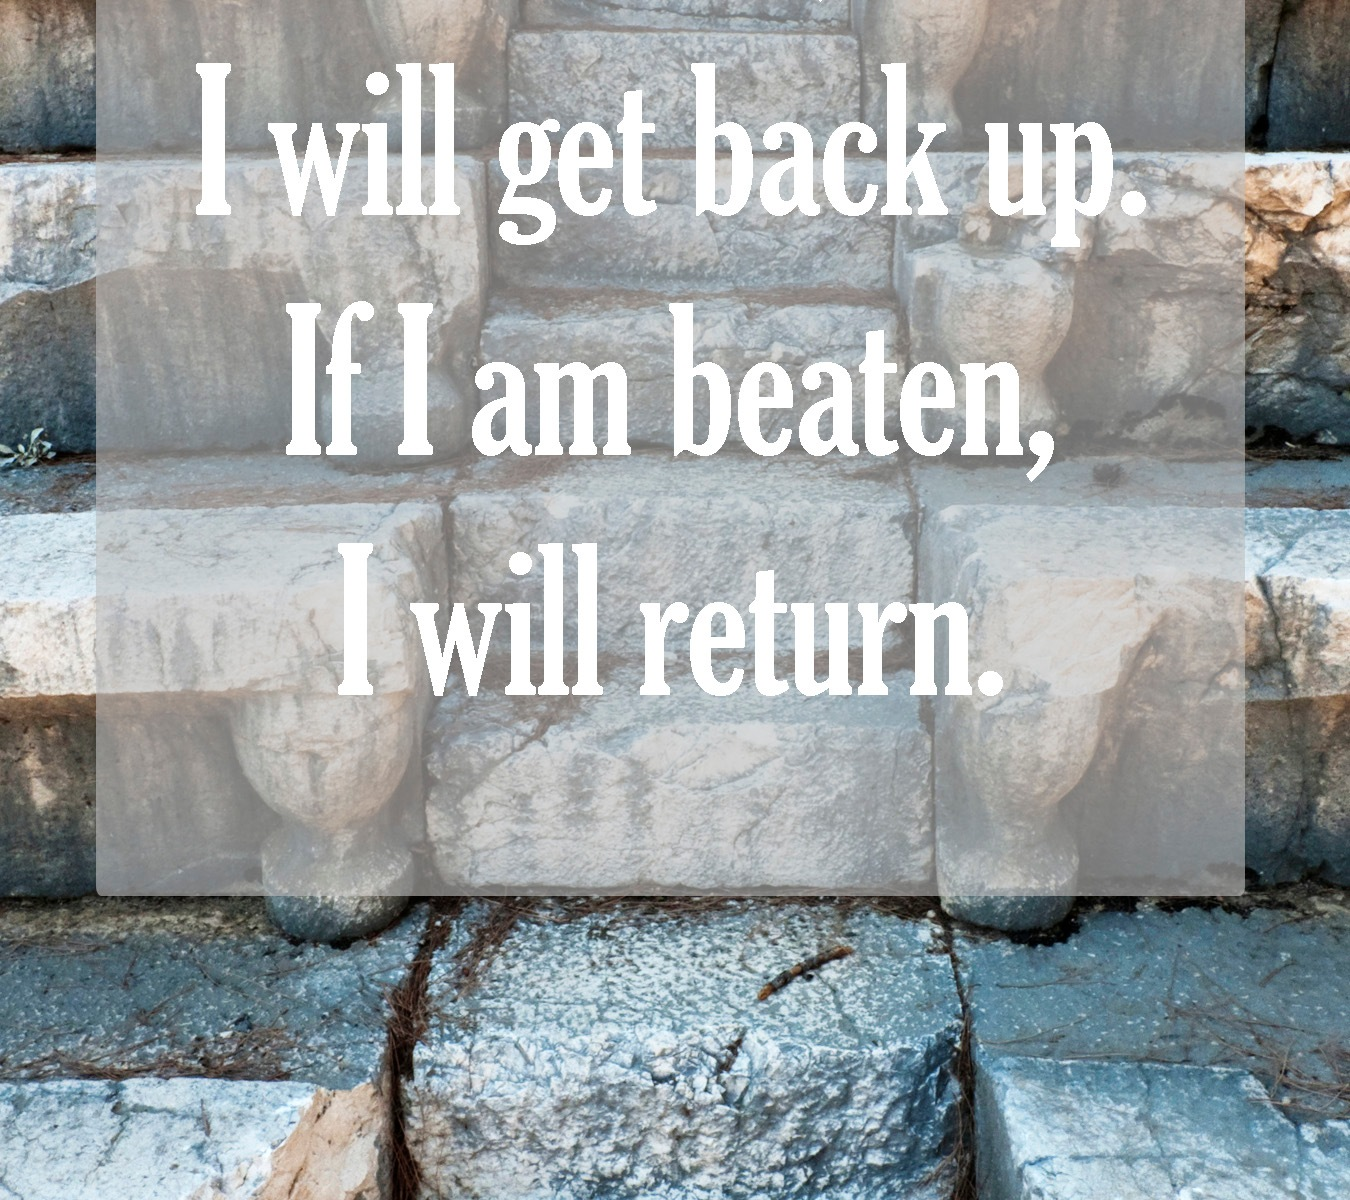 Fall and get back. be beaten and return